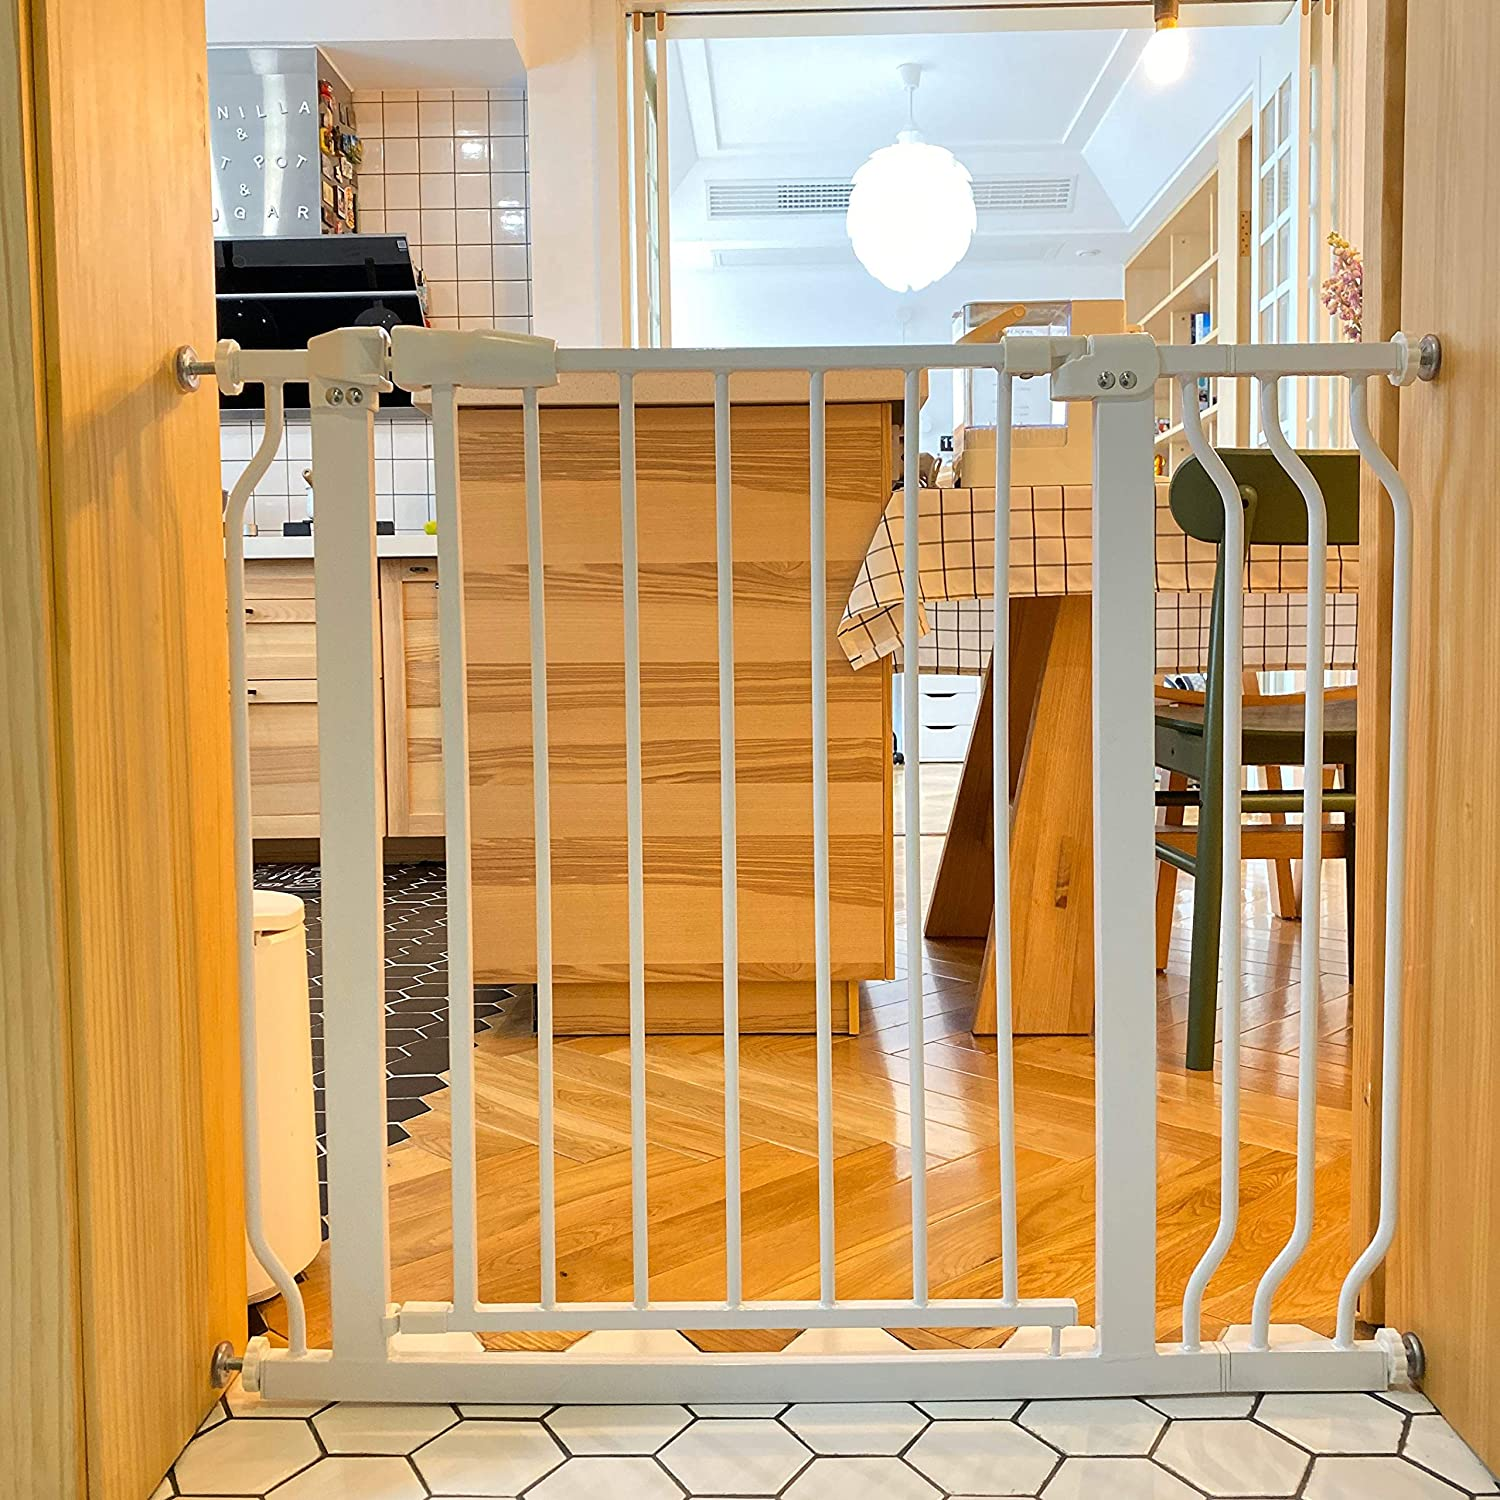 BalanceFrom Easy Walk-ThruSafety Gate for Doorways and Stairways with Auto-Close/Hold-Open Features, Multiple Sizes, White: Sports & Outdoors